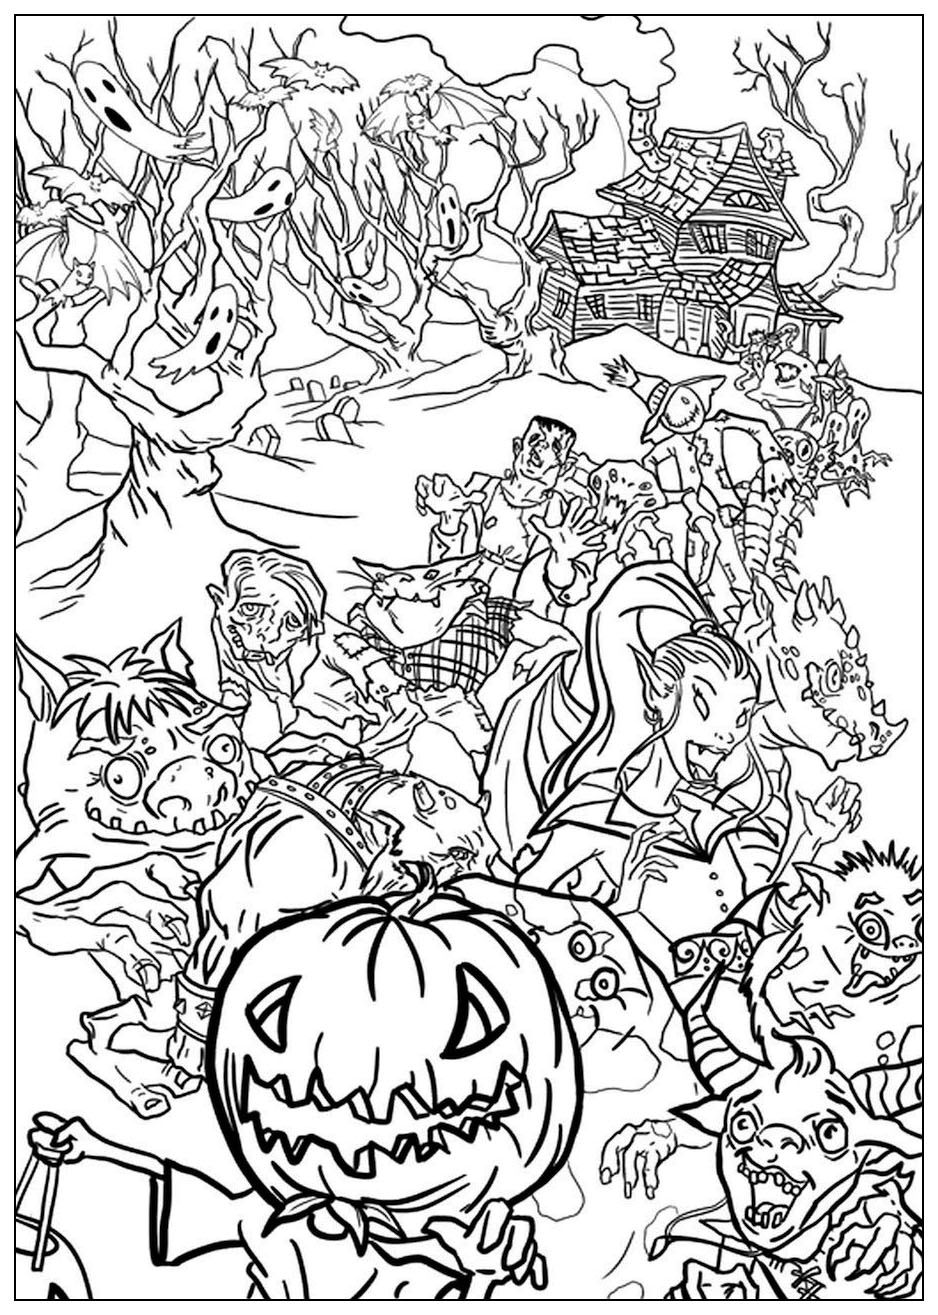 Halloween Monsters Halloween Coloring Pages For Adults Just